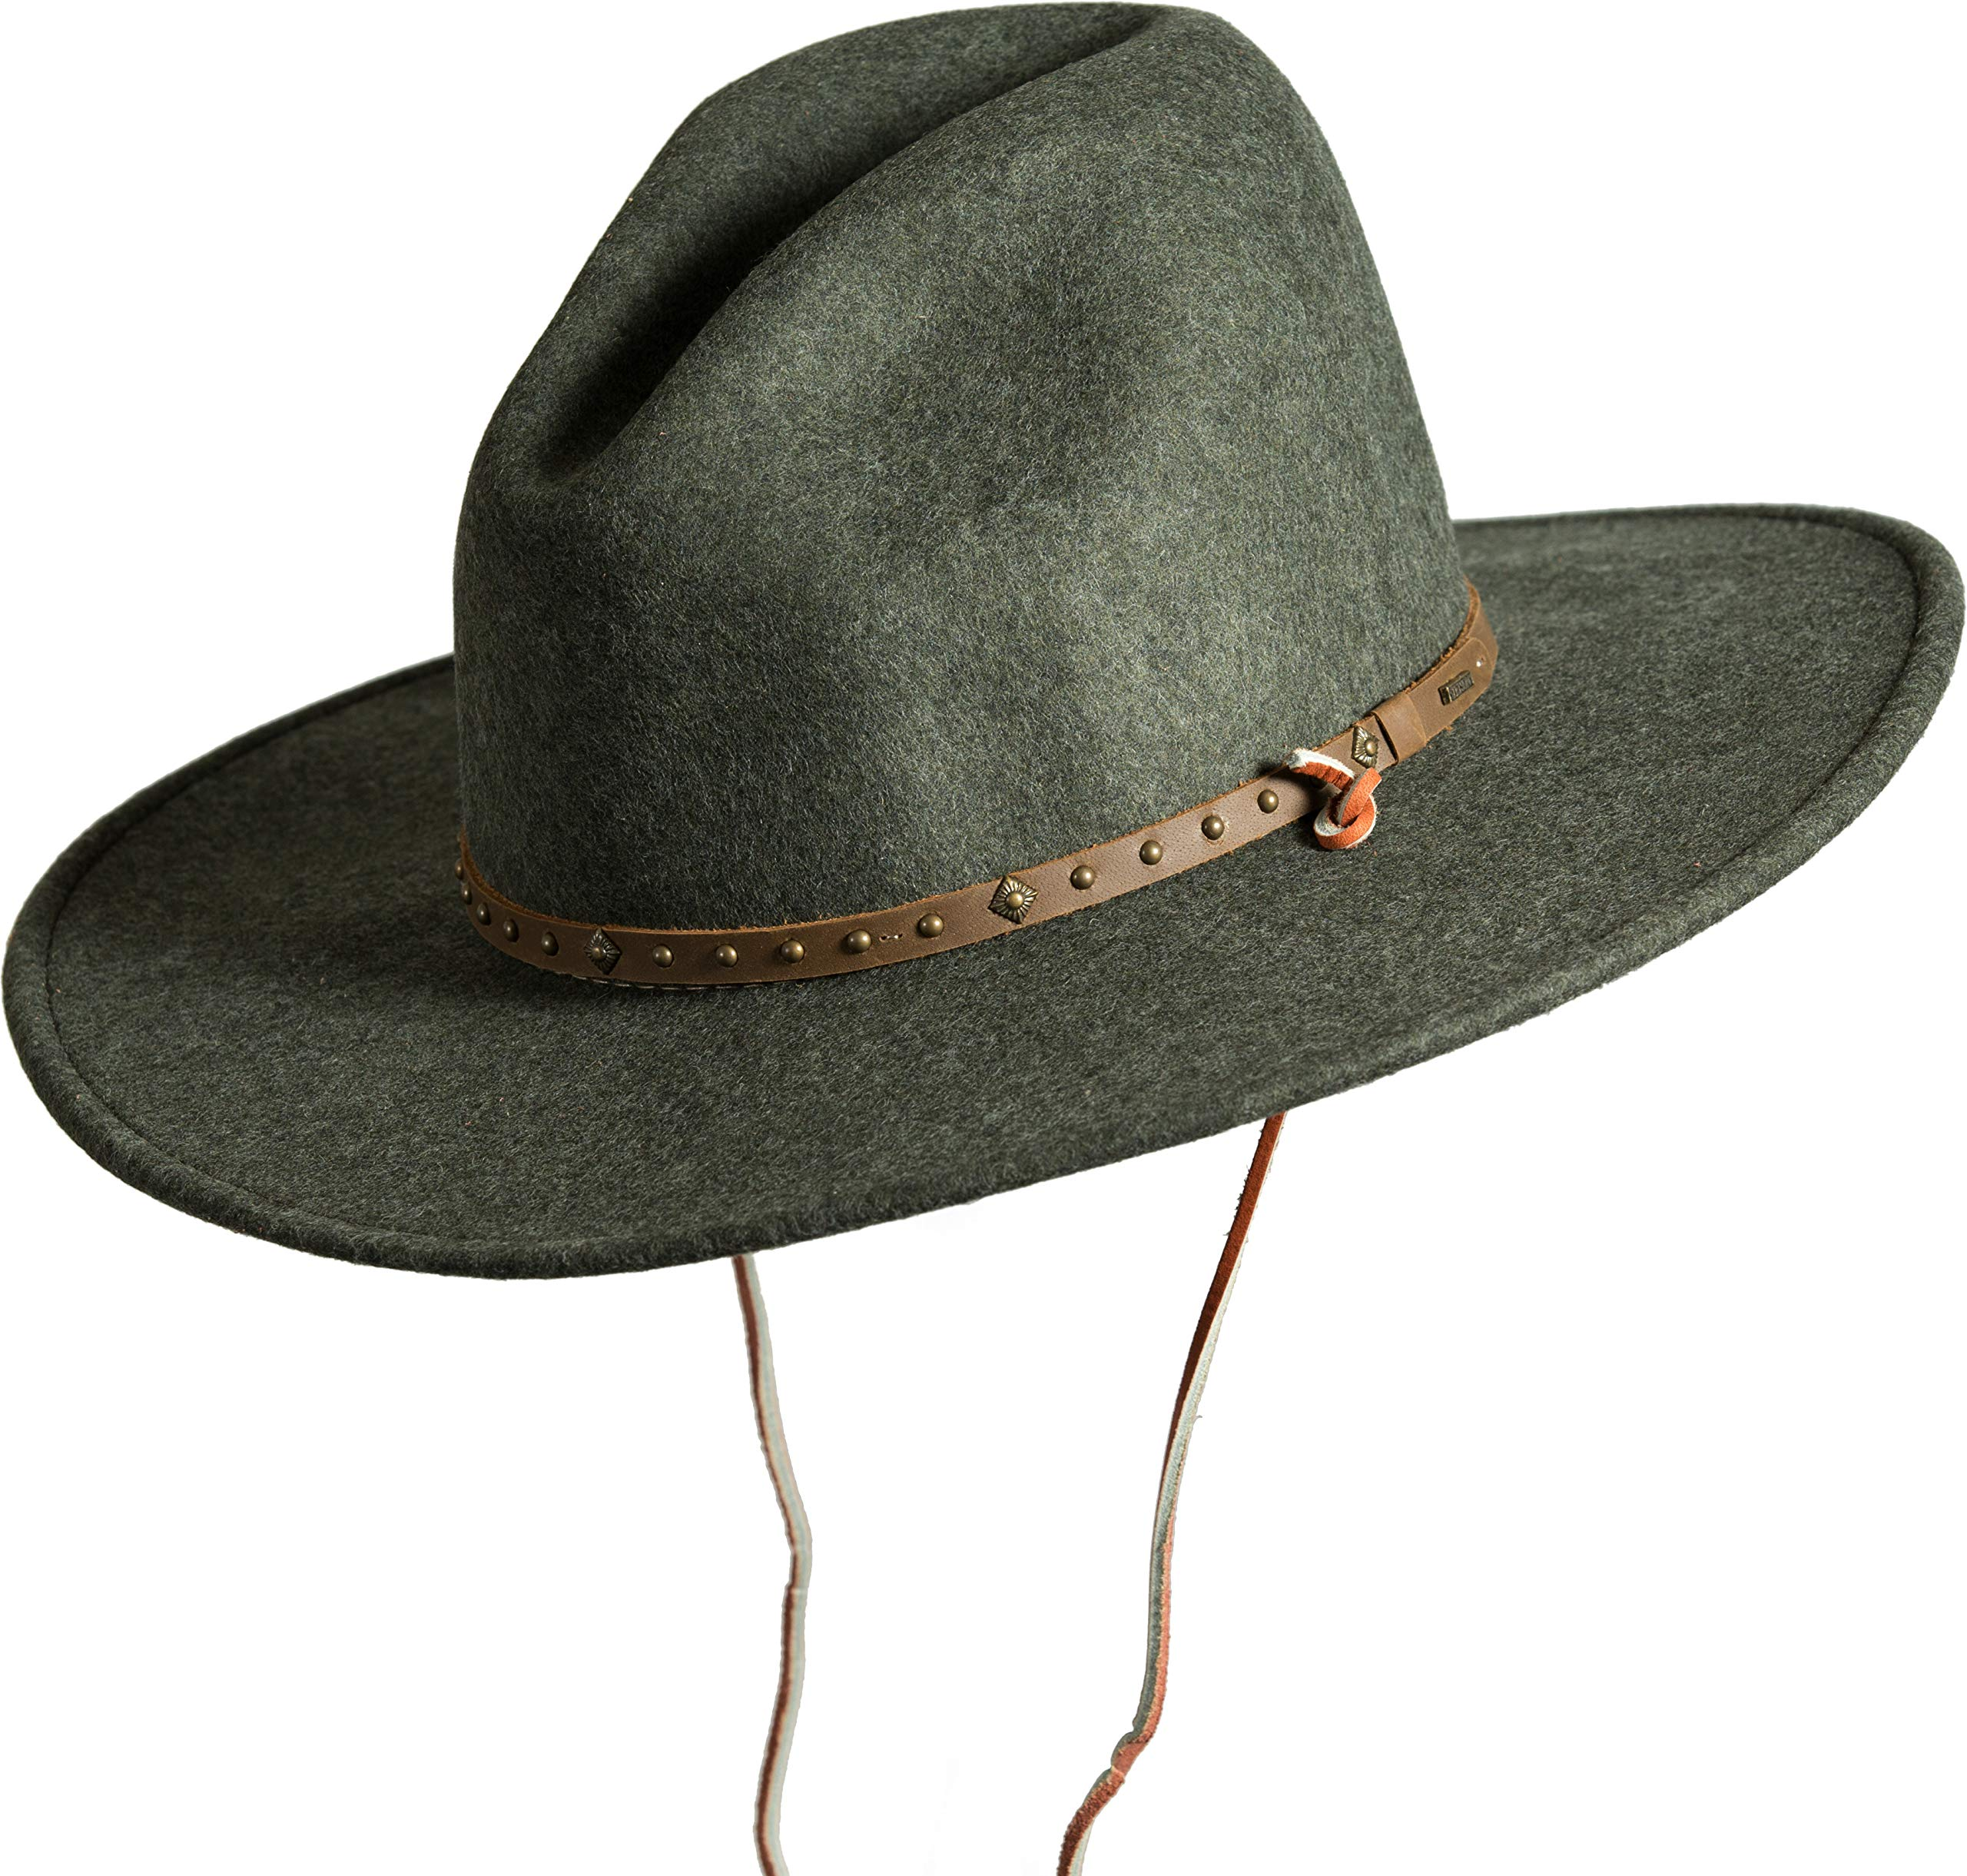 Men's Lonesome Trail Crushable Wool Stetson Hat, OLIVE MIX, Size SMALL by Stetson (Image #1)